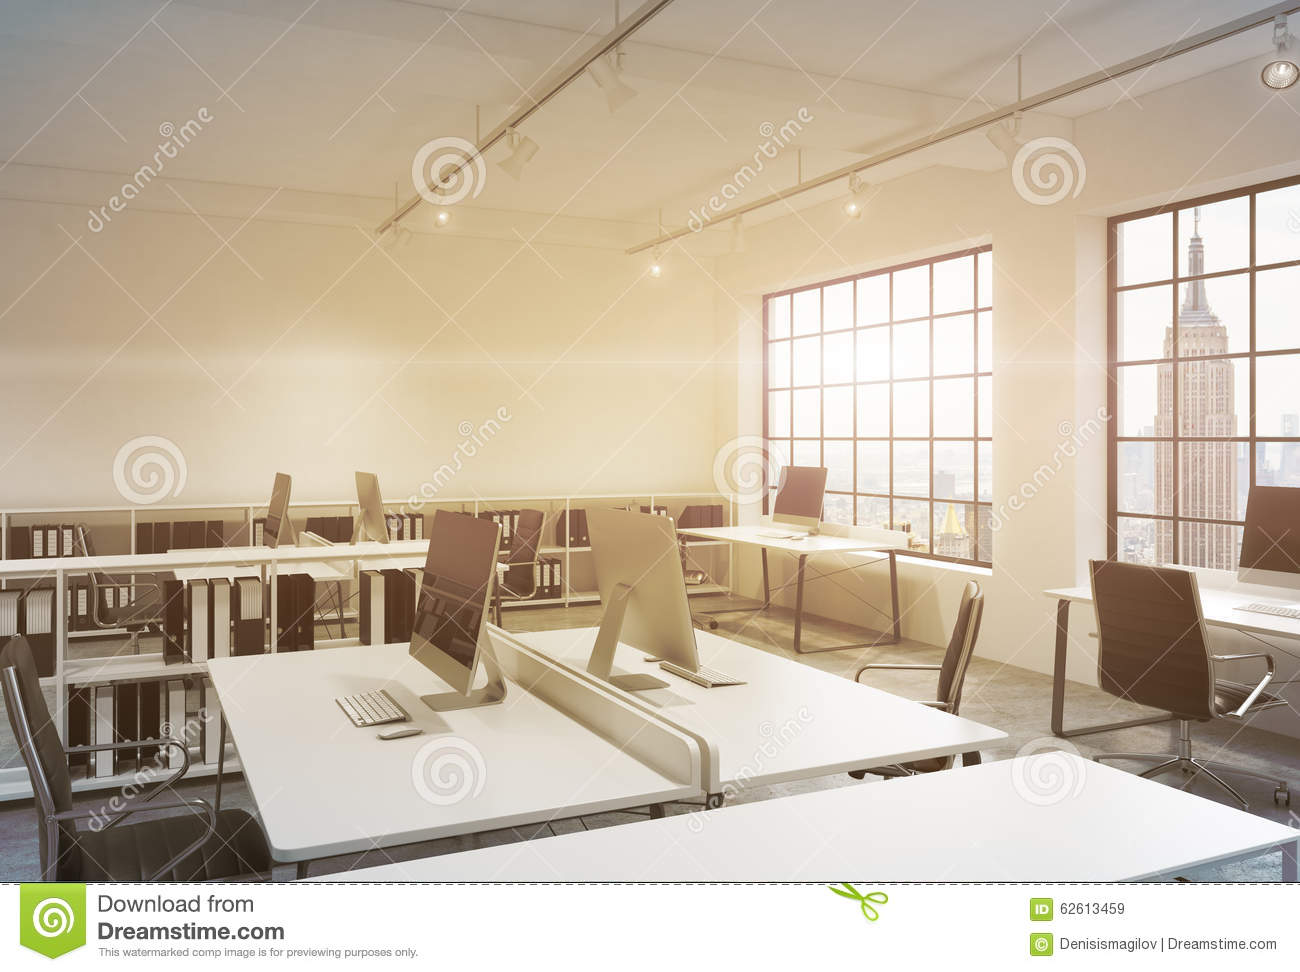 Workplaces In A Sunset Loft Open Space Office. Tables Are Equipped ...